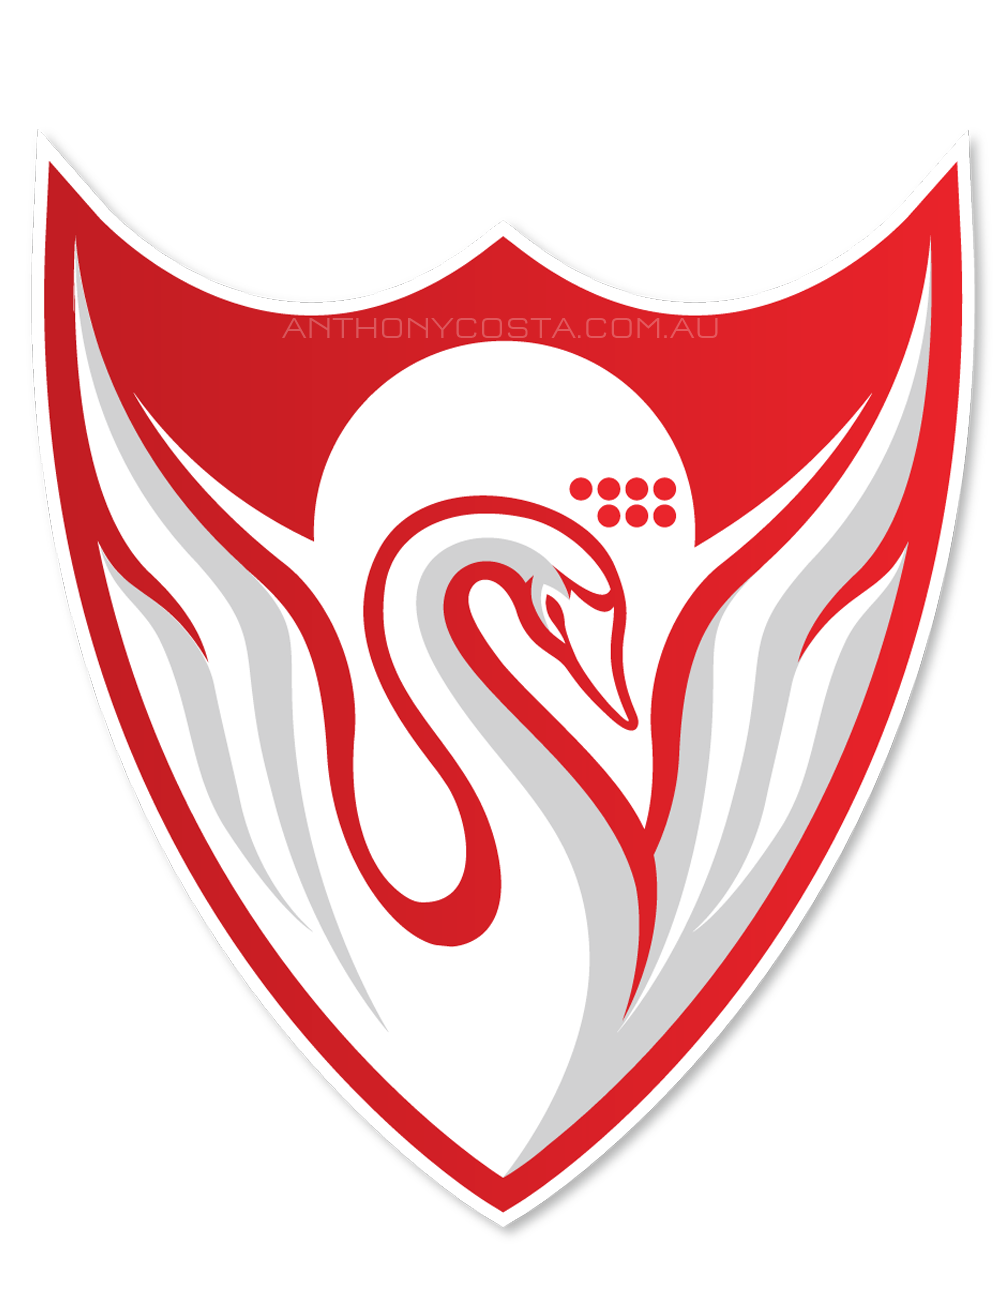 Arsta Swans football logo design